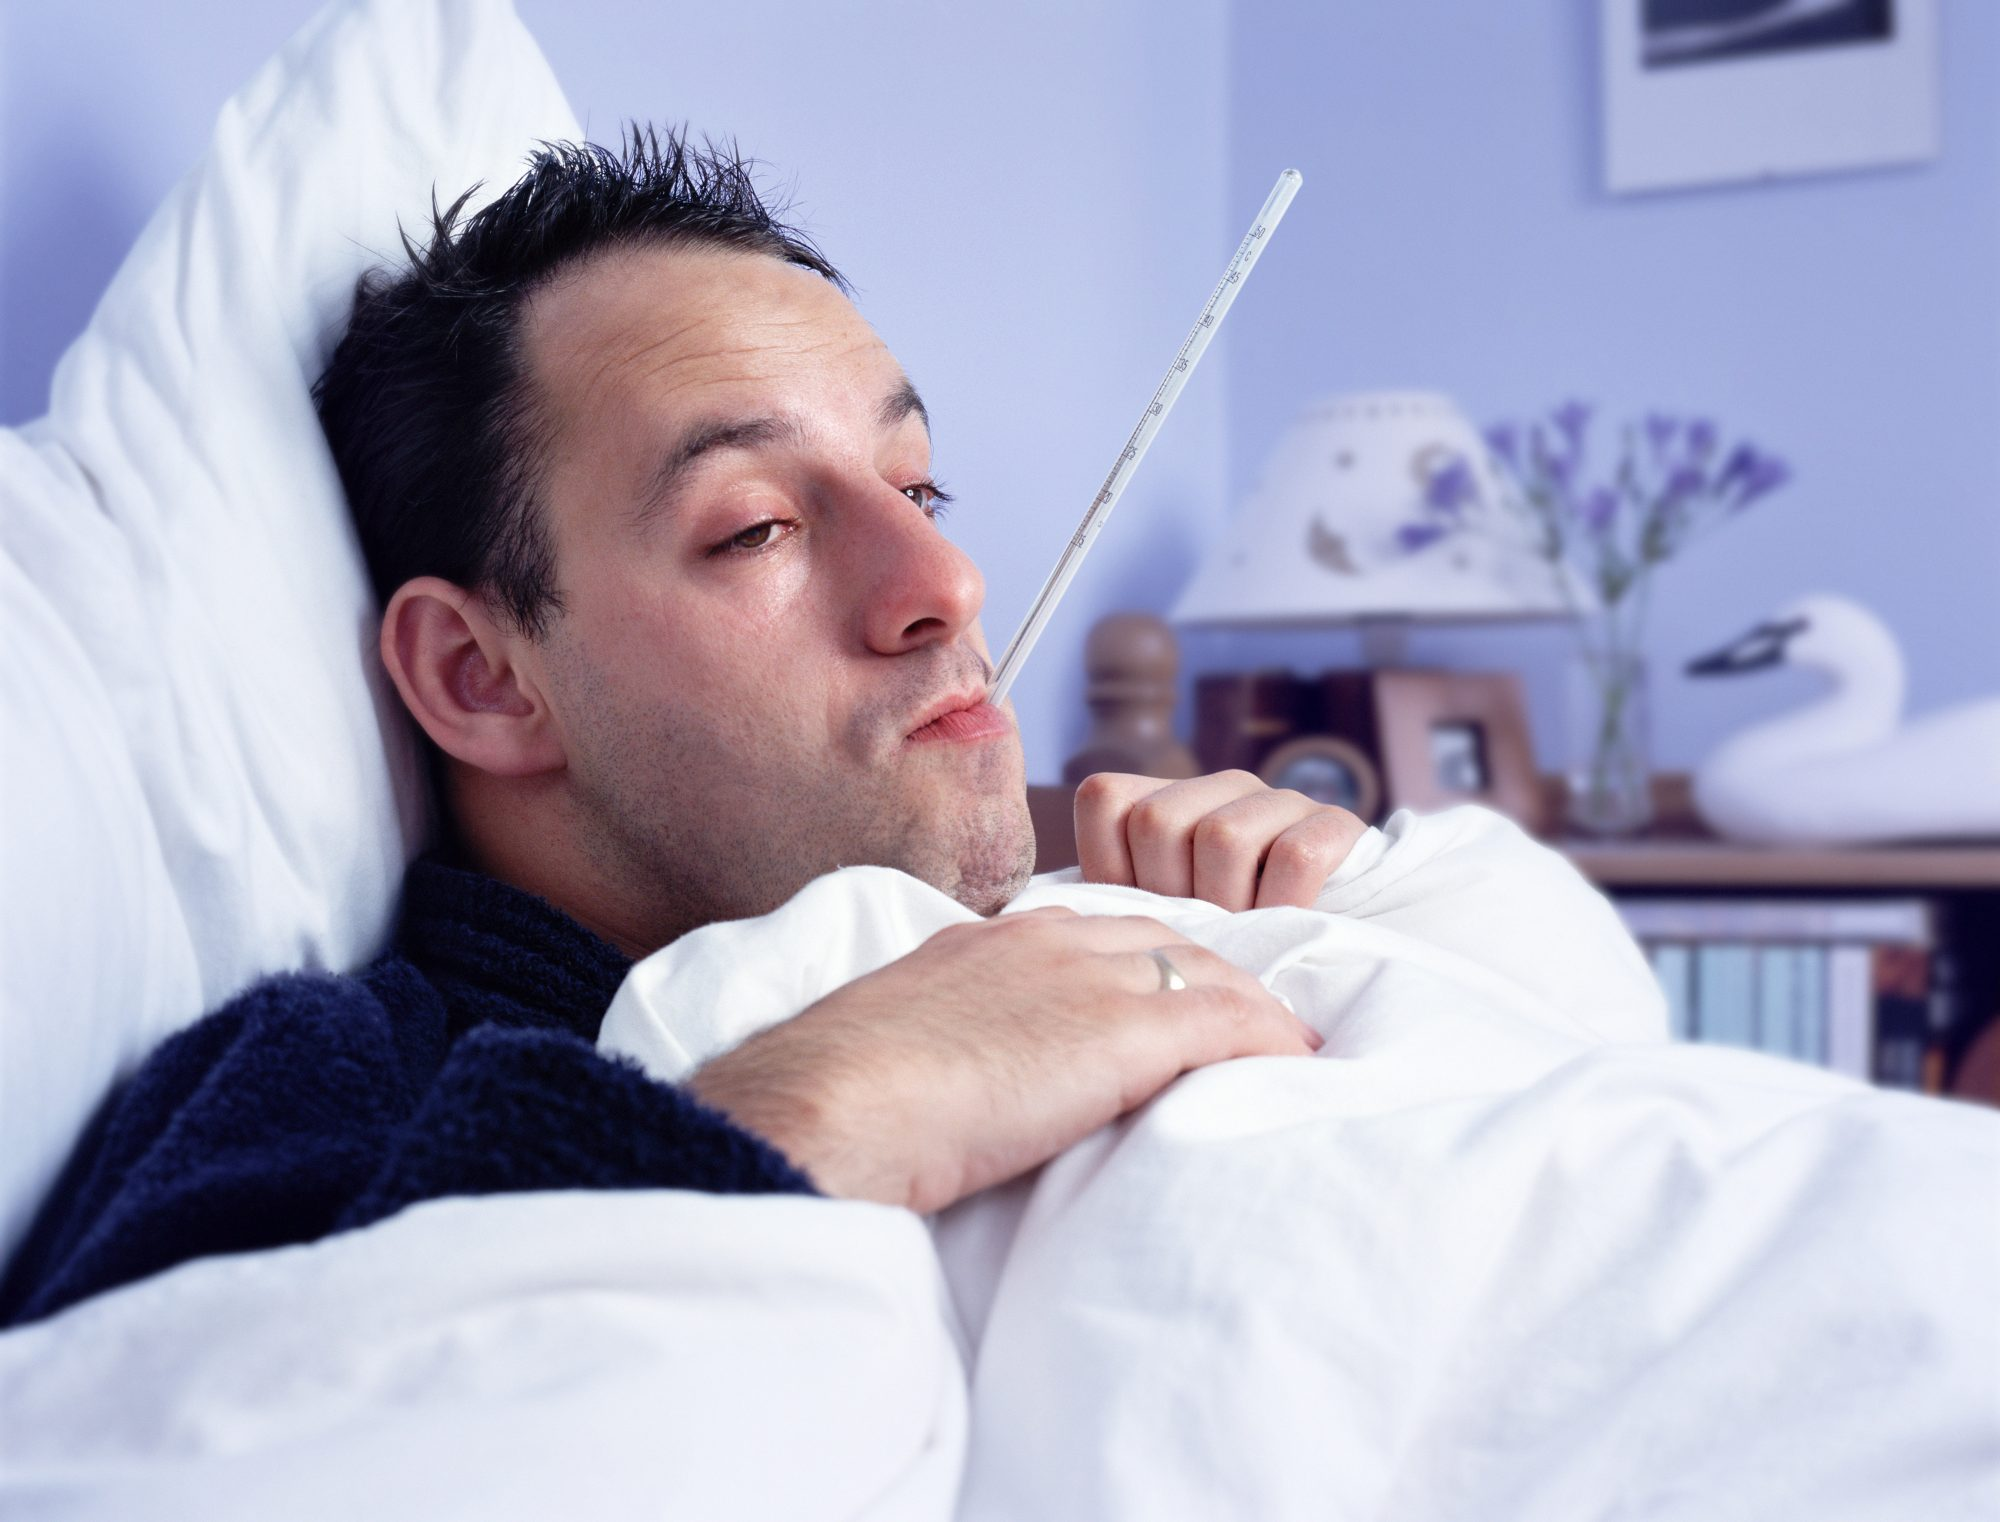 Man lying in bed, with thermometer in mouth, close-up (Enhancement)